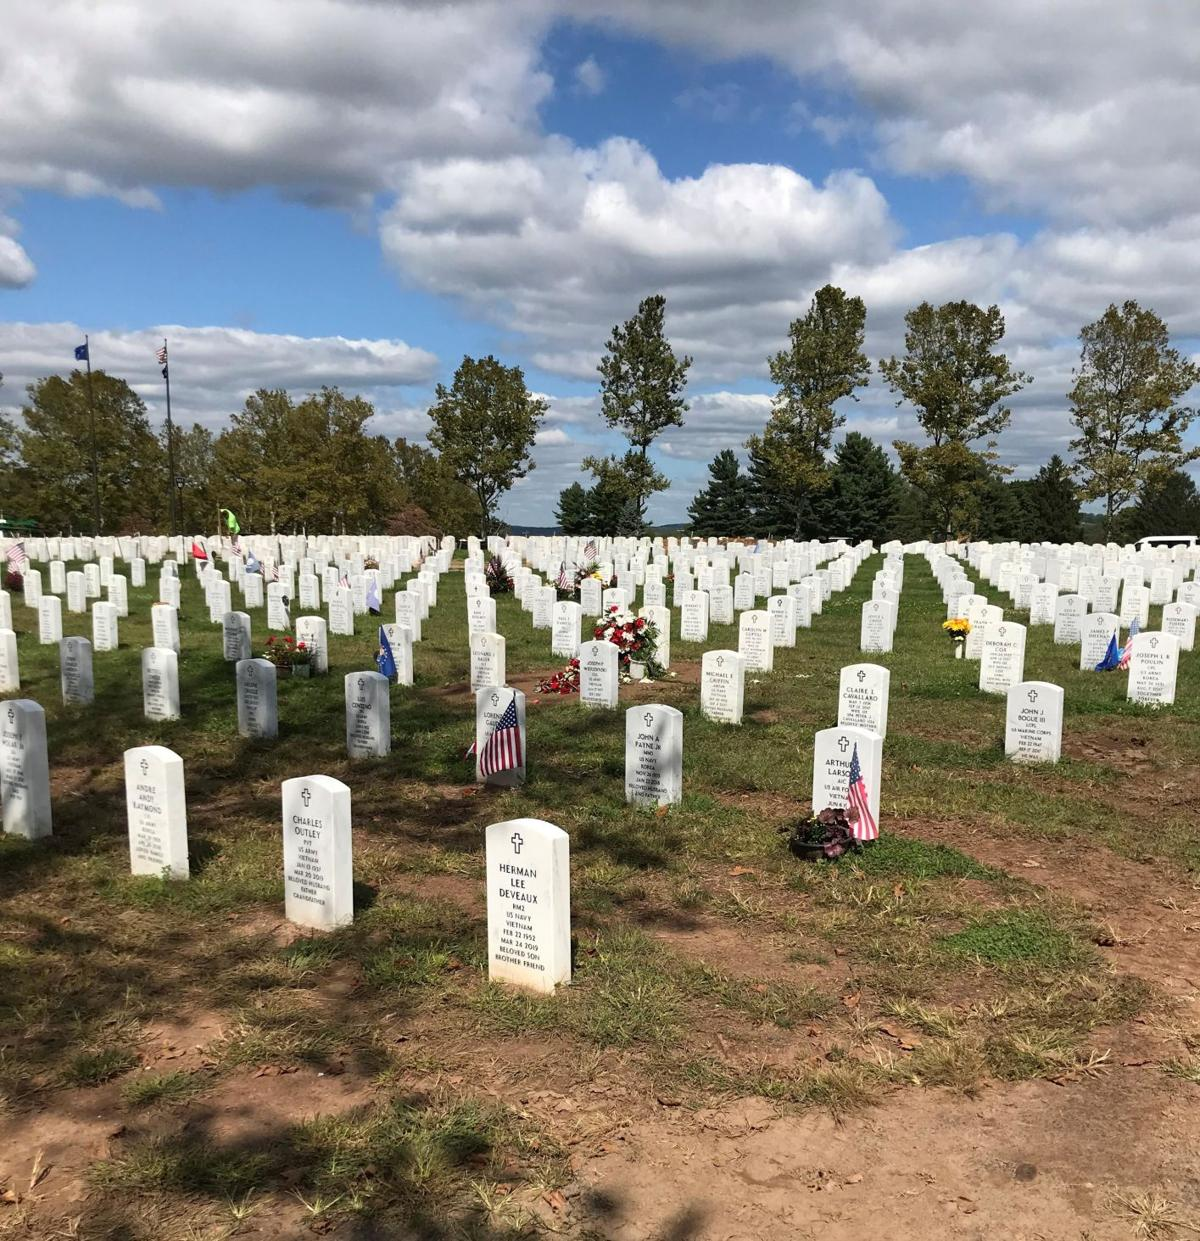 Workers from across state help beautify Connecticut Veterans Cemetery